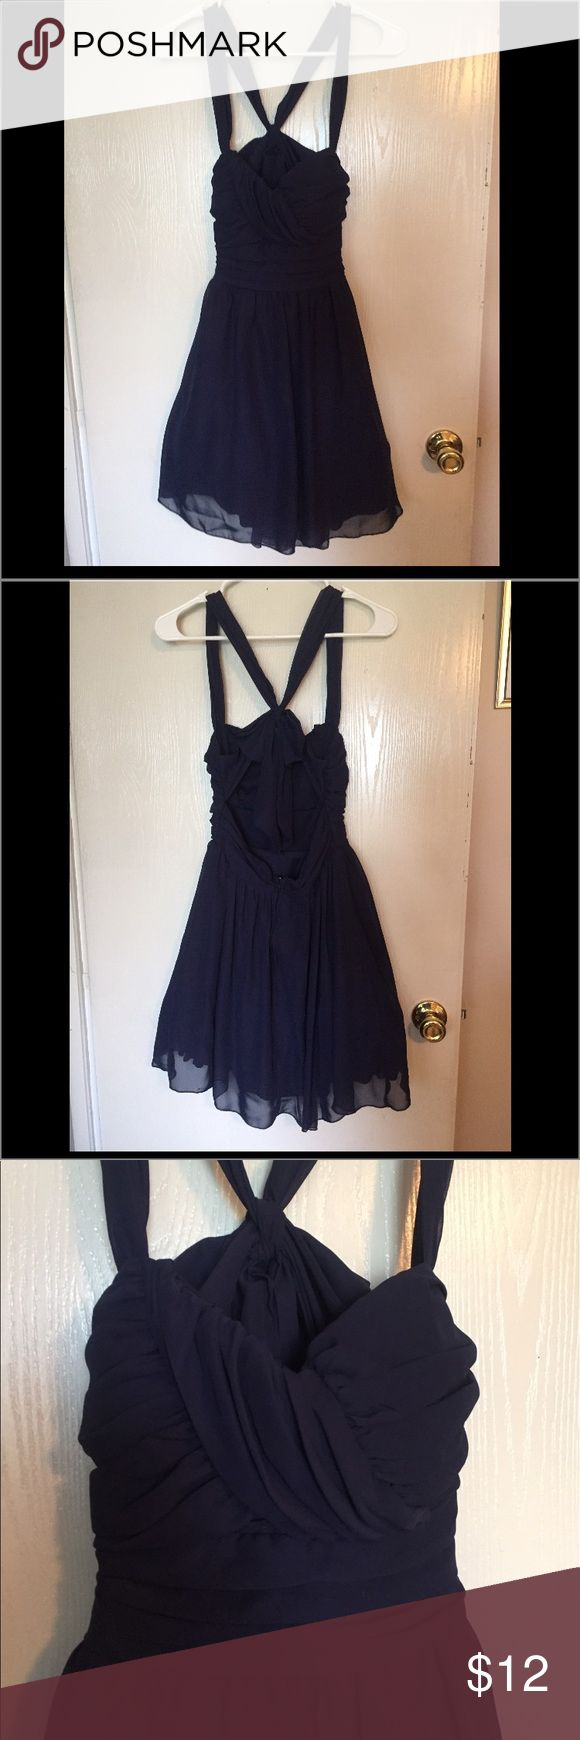 Beautiful semi formal dress! Navy blue with bow! This deep navy blue silky dress has a mini crinoline !! Kris cross back with a bow that stays tied!! Zips up the back lined and gathered in front so you don't have to wear a bra!! This dress has no size tag but I assure you it's a small! Dresses Mini